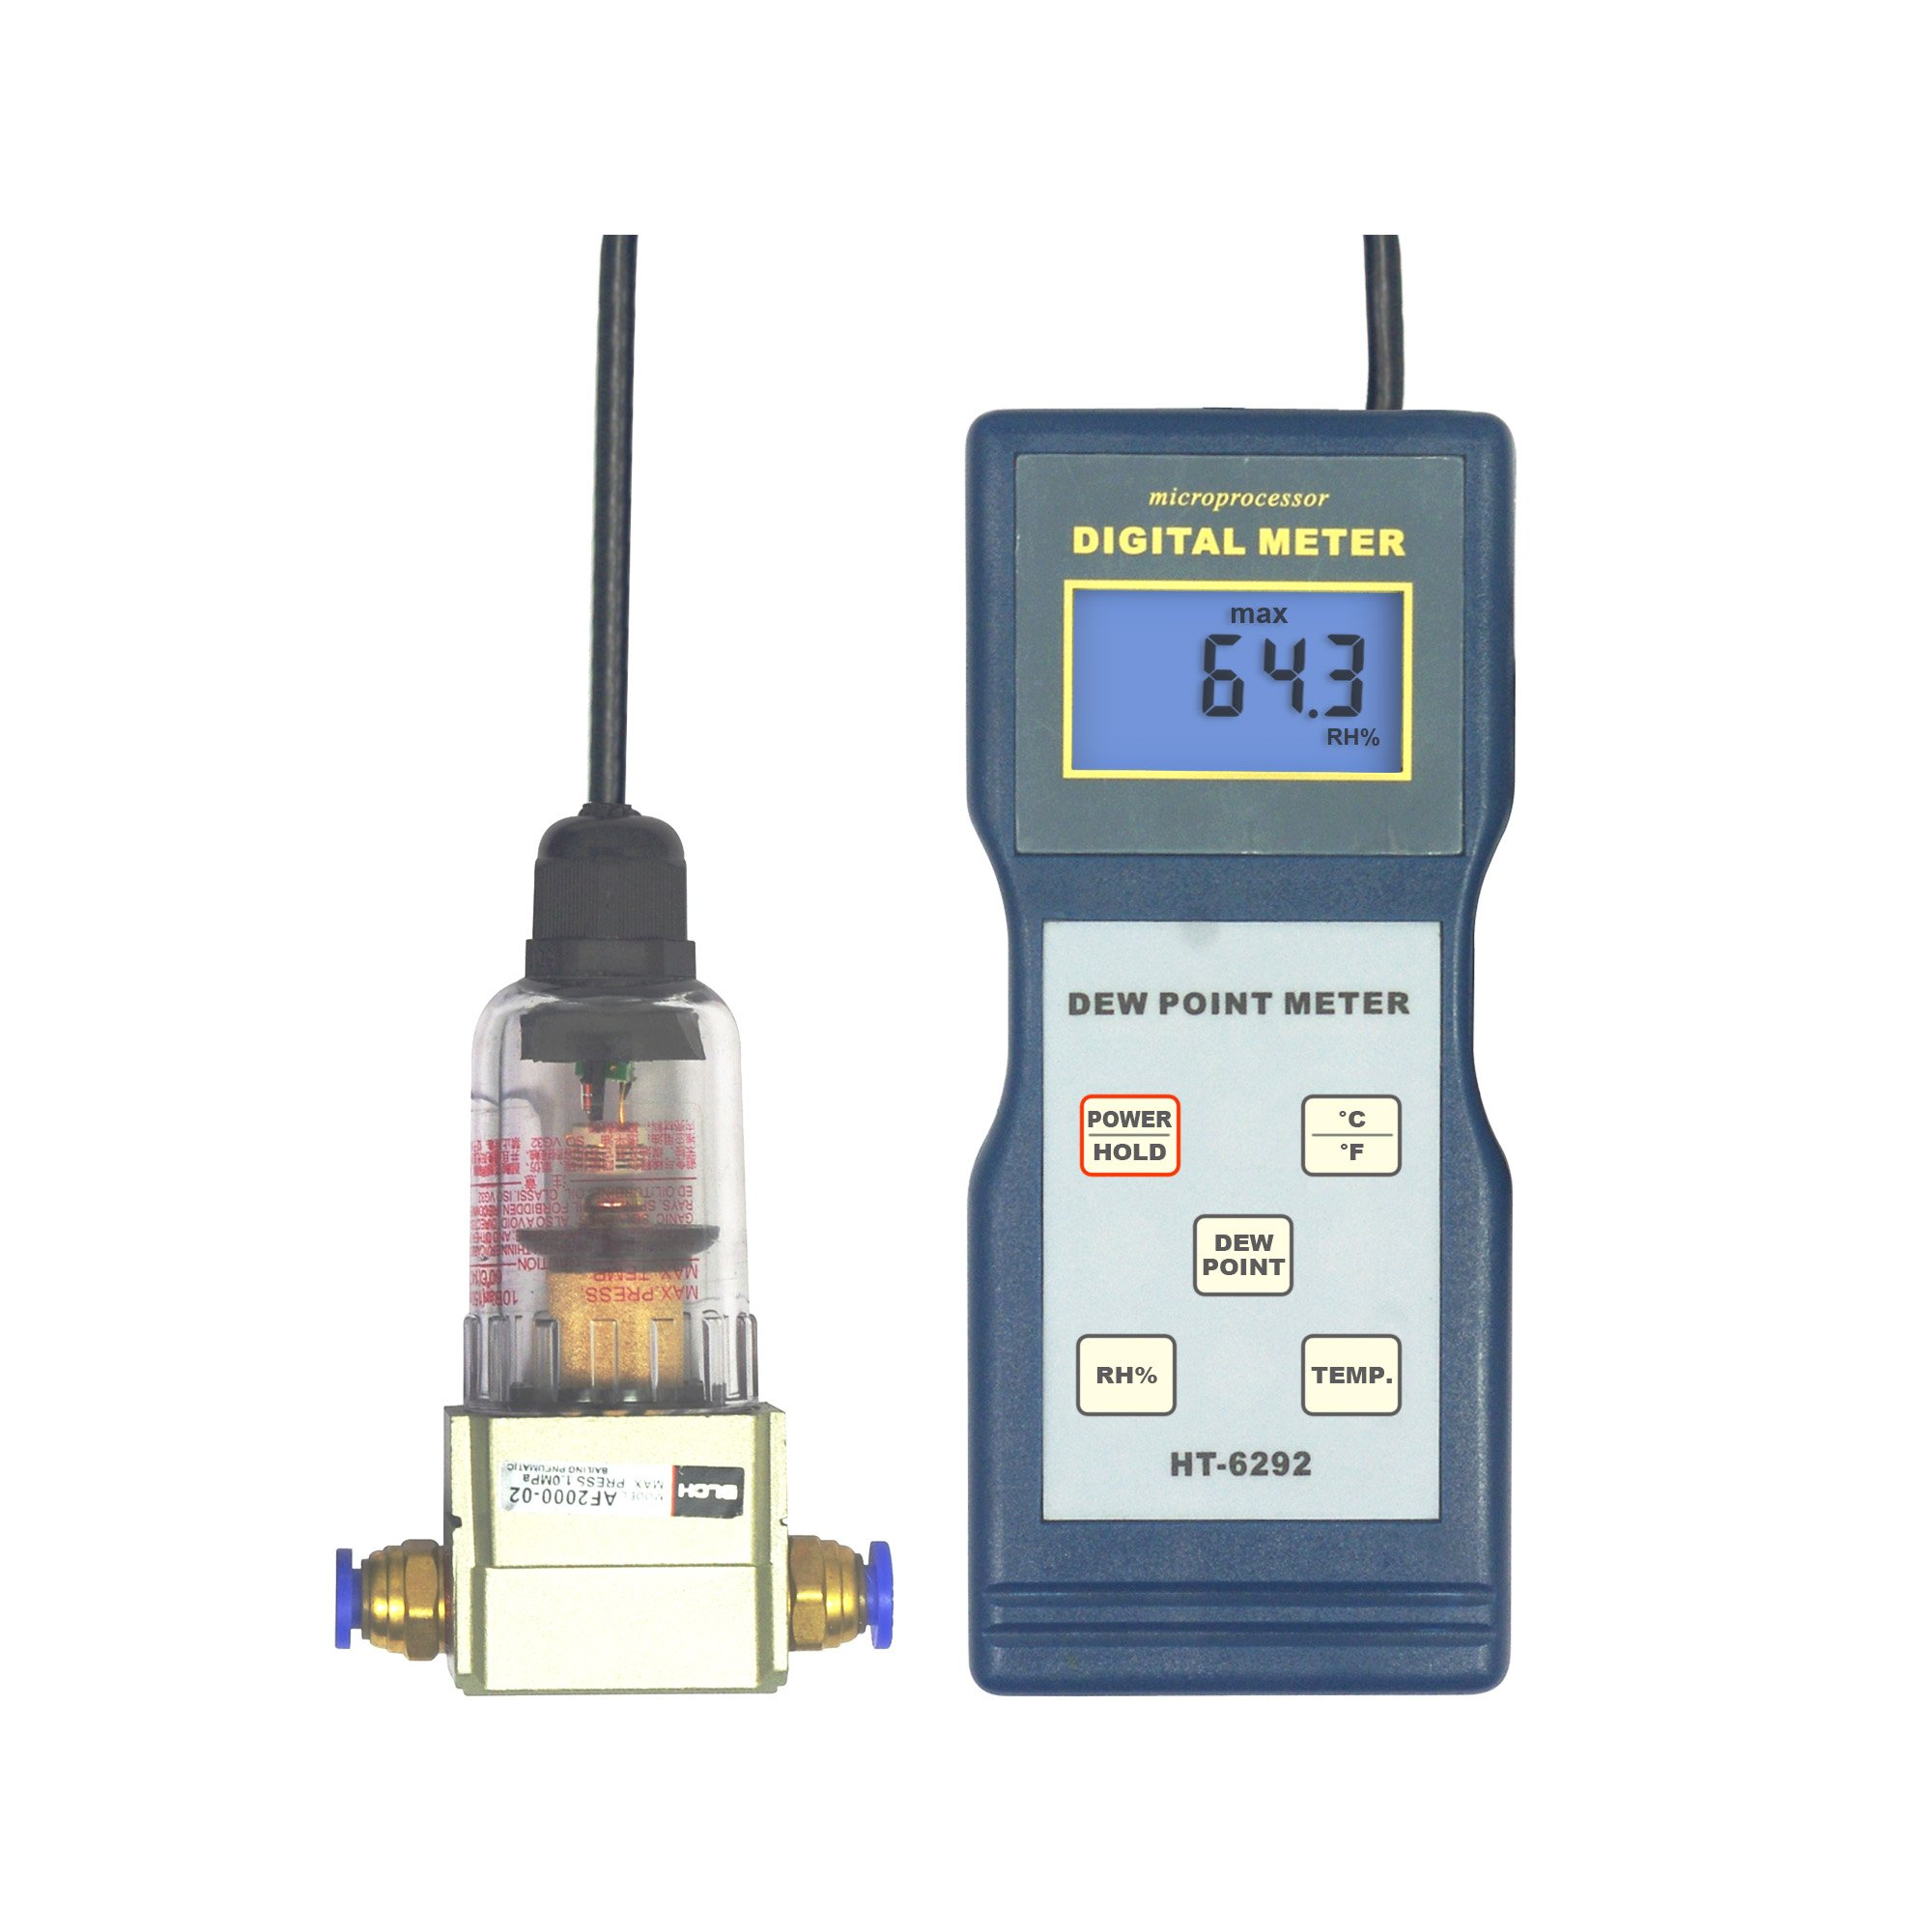 Landtek Humidity, Temperaturer, Dew Point Temperature Meter -40~40°C HT-6292 10~95%RH -10~60ºC(14~140ºF) for Workshops, Offices, Plantes, Libraries, Laboratories and Warehouses